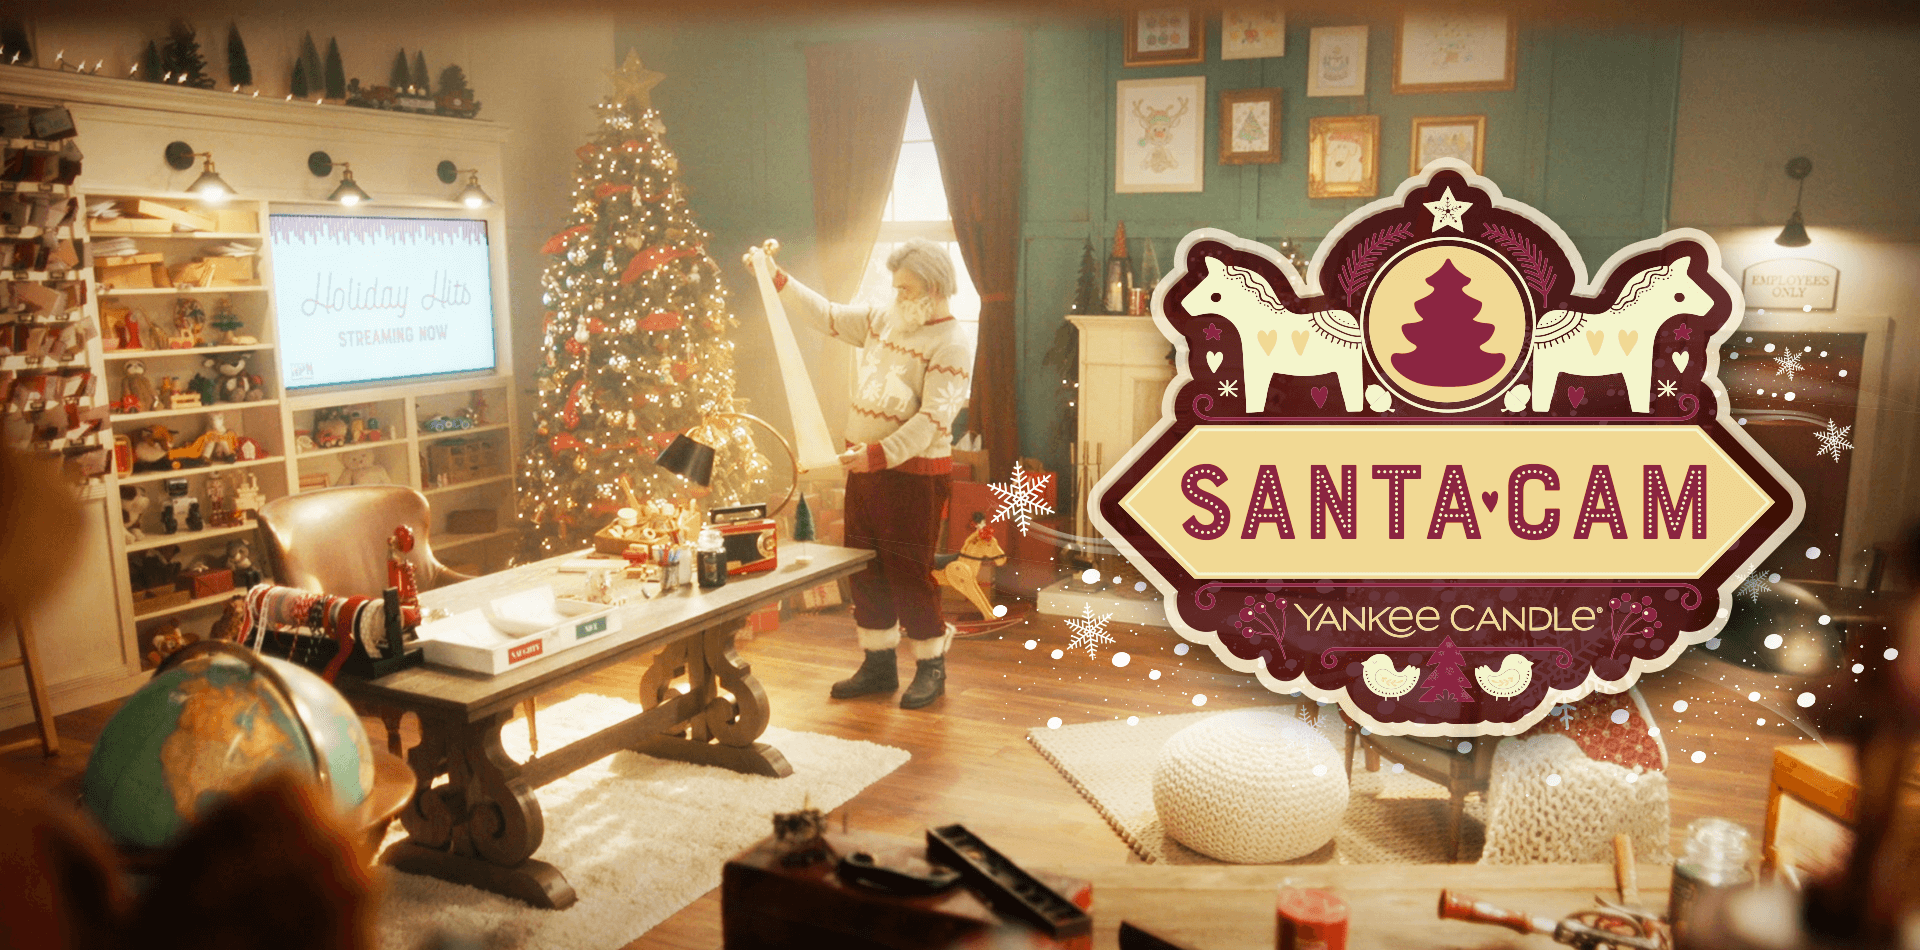 Yankee Candle and TMA saved the magic of Christmas during the pandemic with Santa Cam